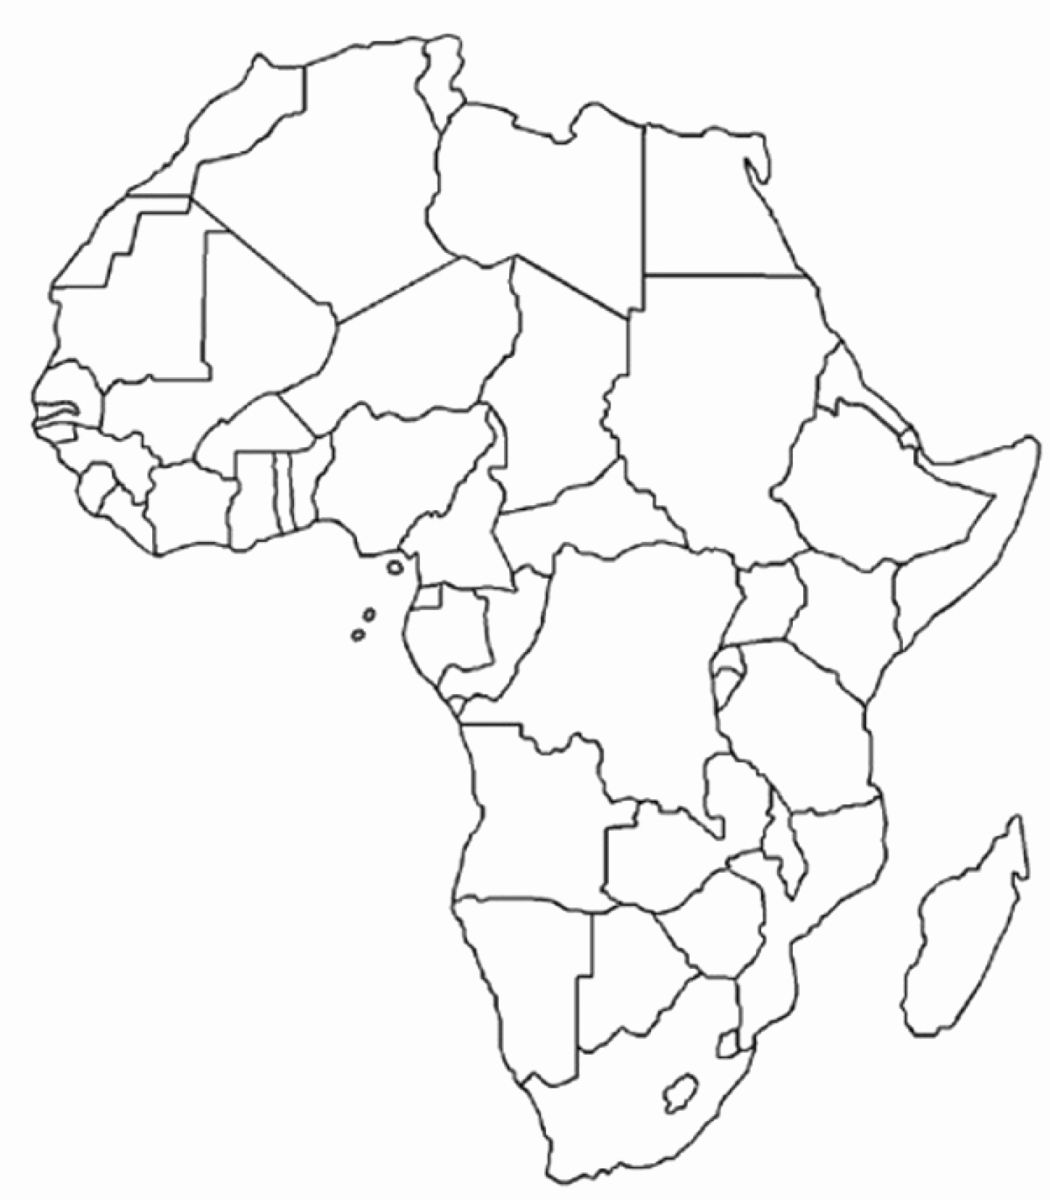 Africa Coloring Page | Color African Continent | Online coloring ... | 1200x1050